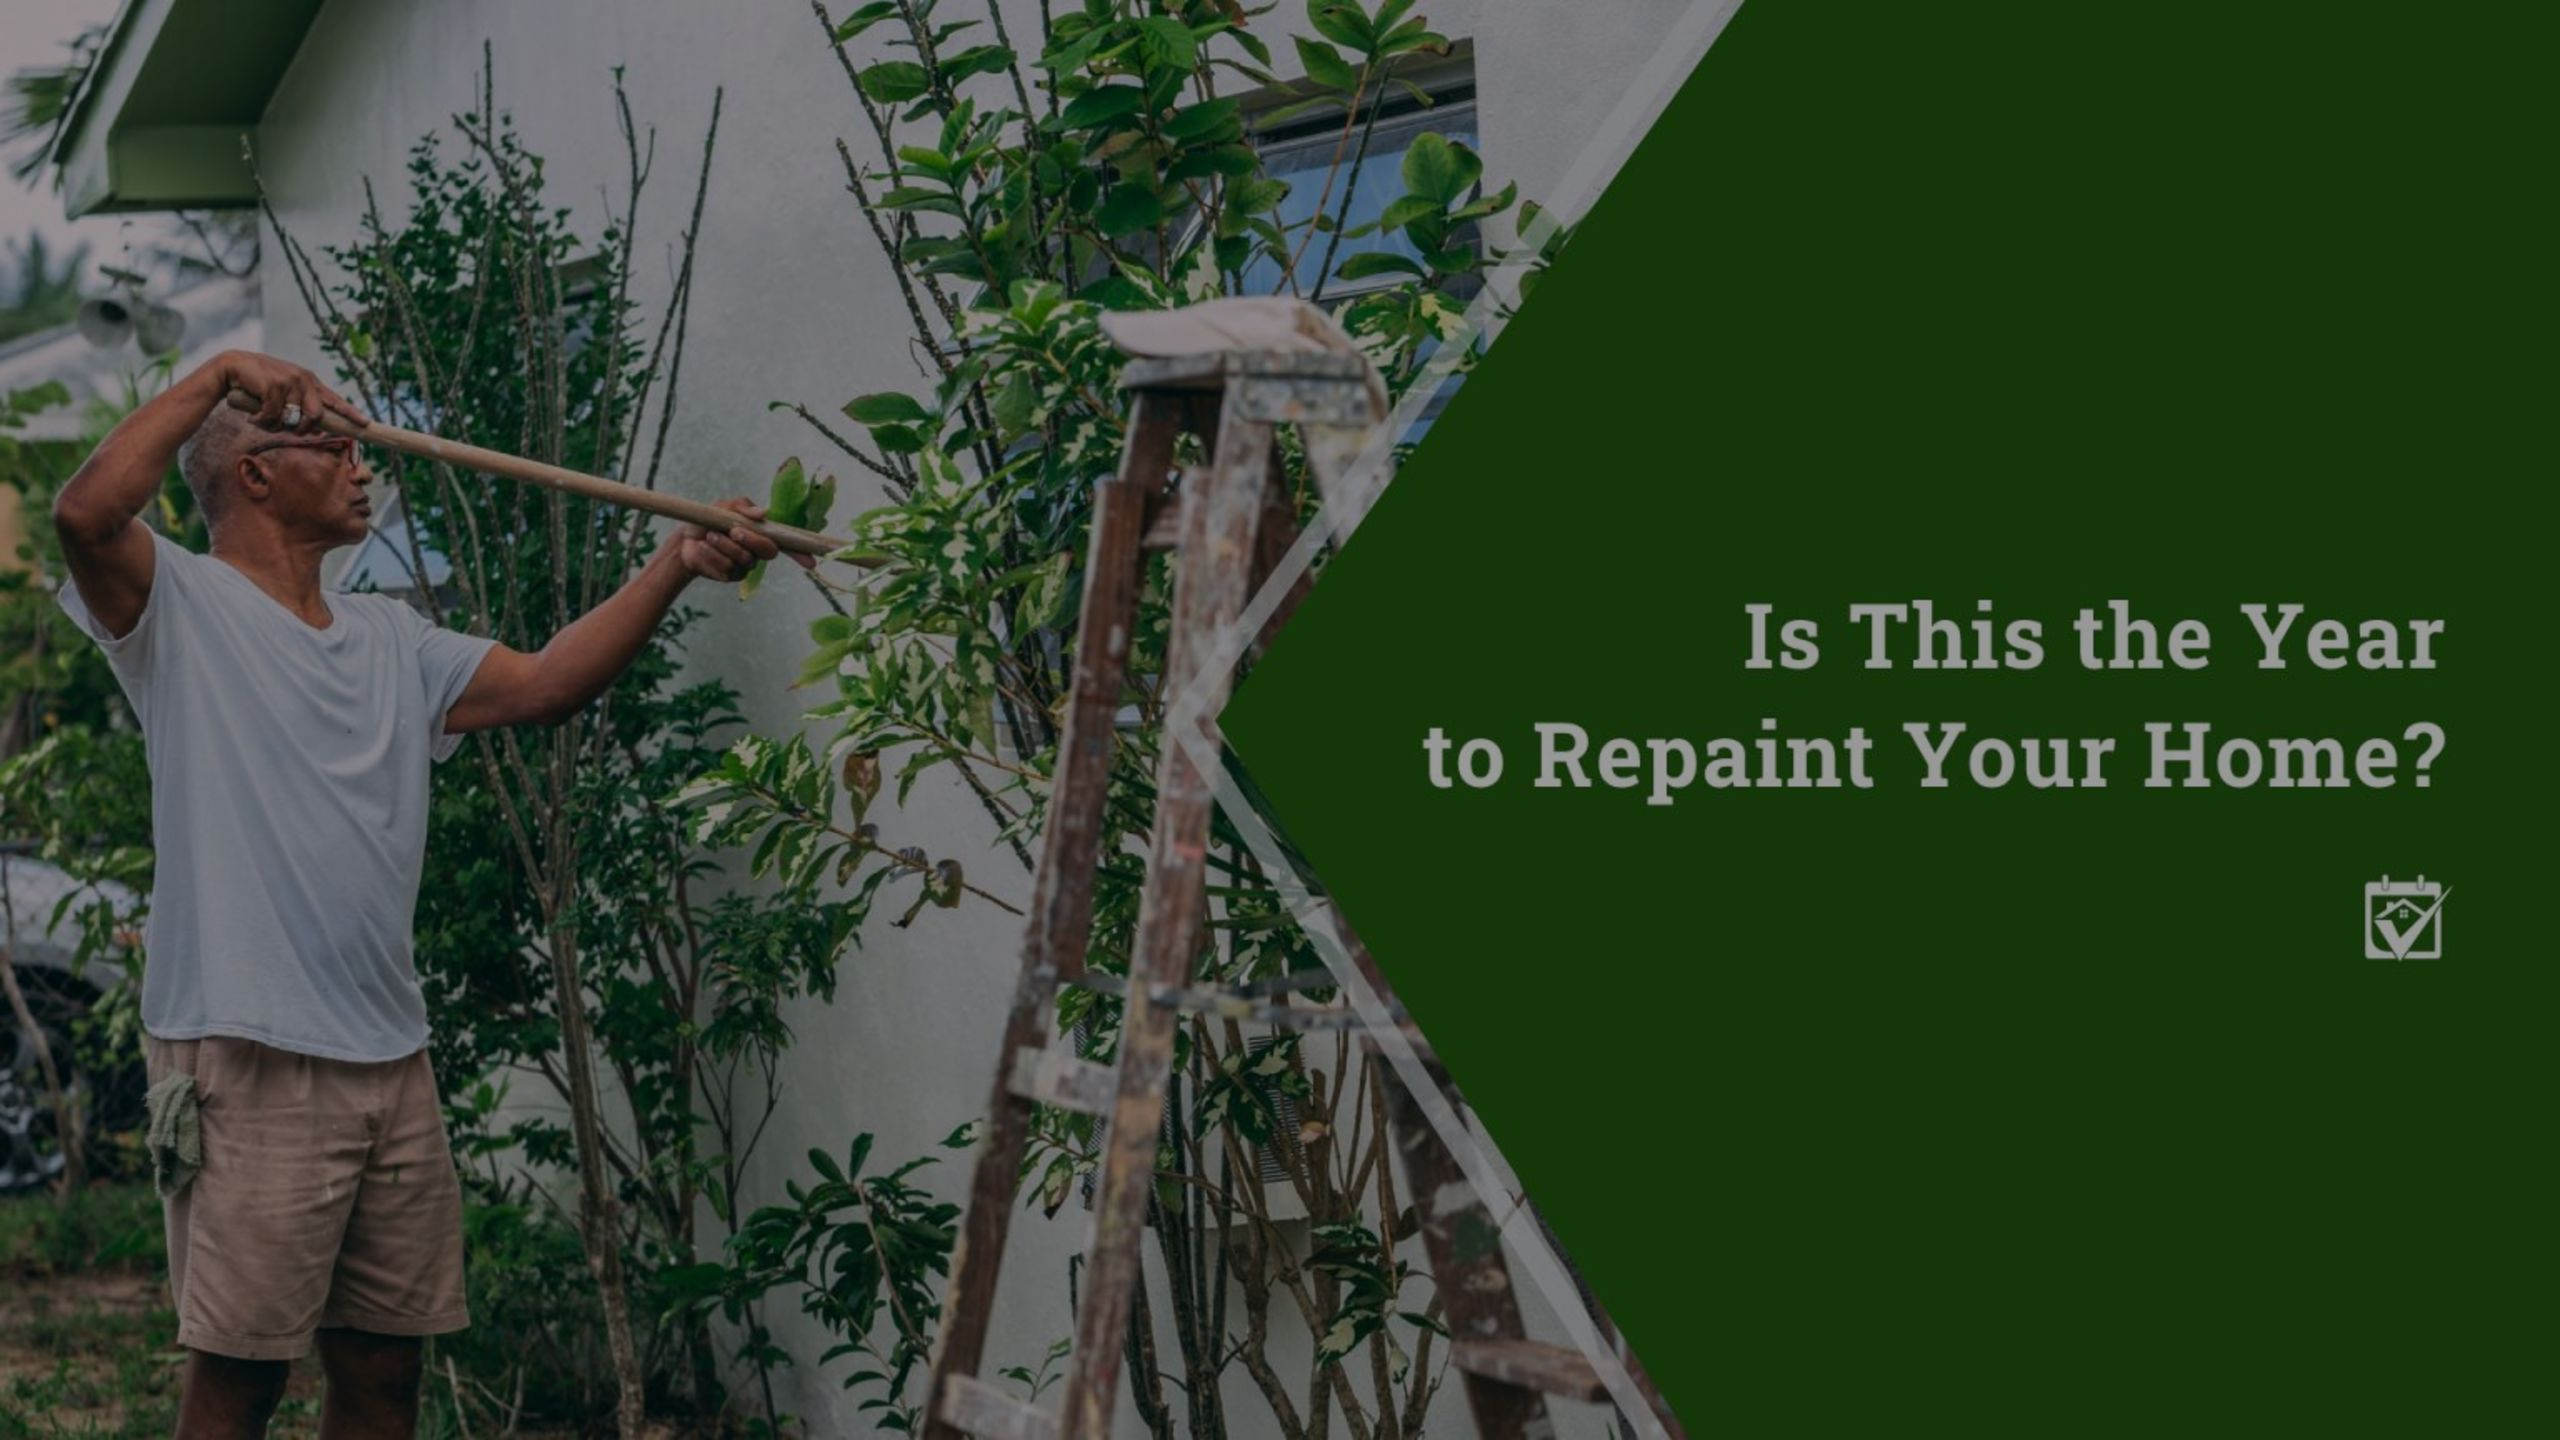 Is This the Year to Repaint Your Home?